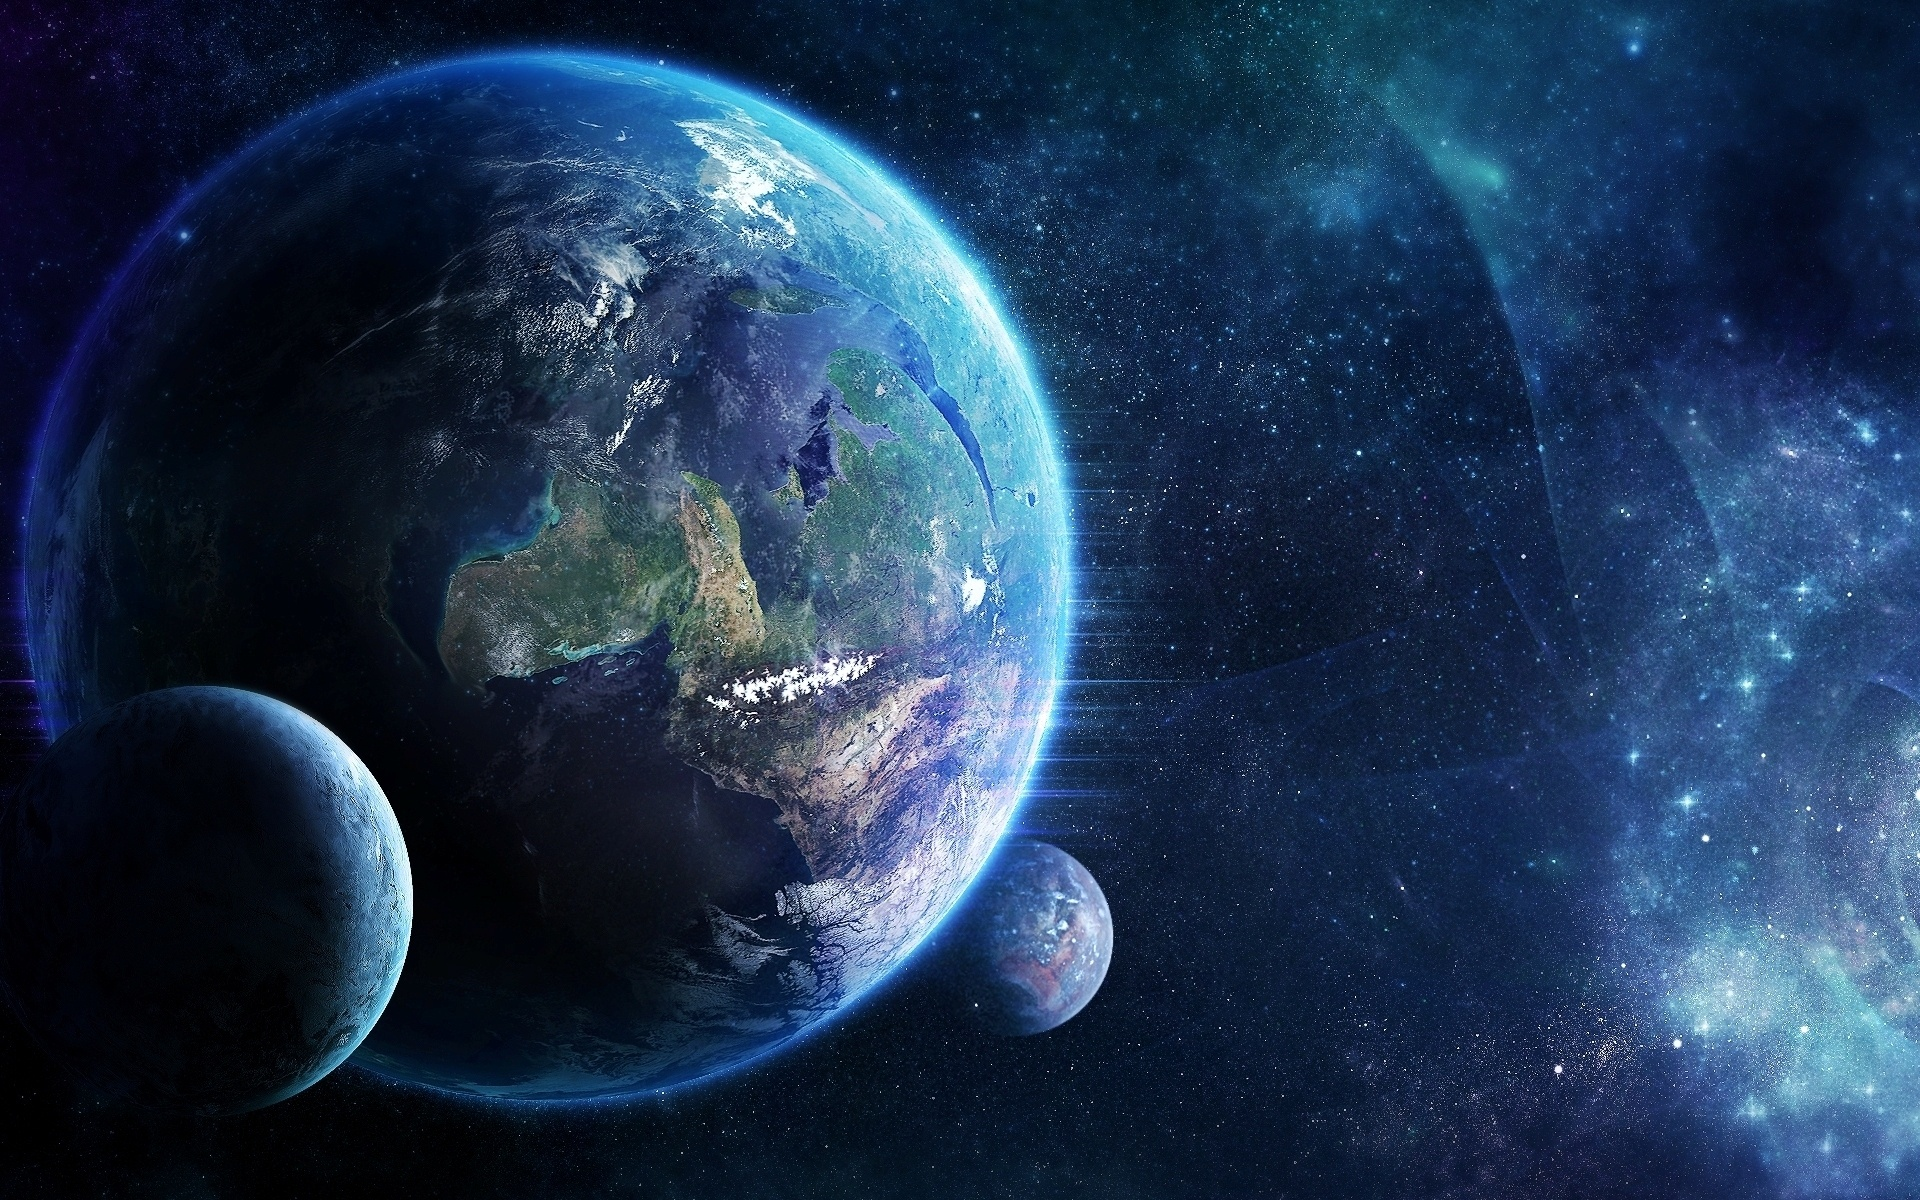 Earth-Moving-in-Space-with-Small-Planets-Photo-and-Desktop-wallpaper-wp3405155